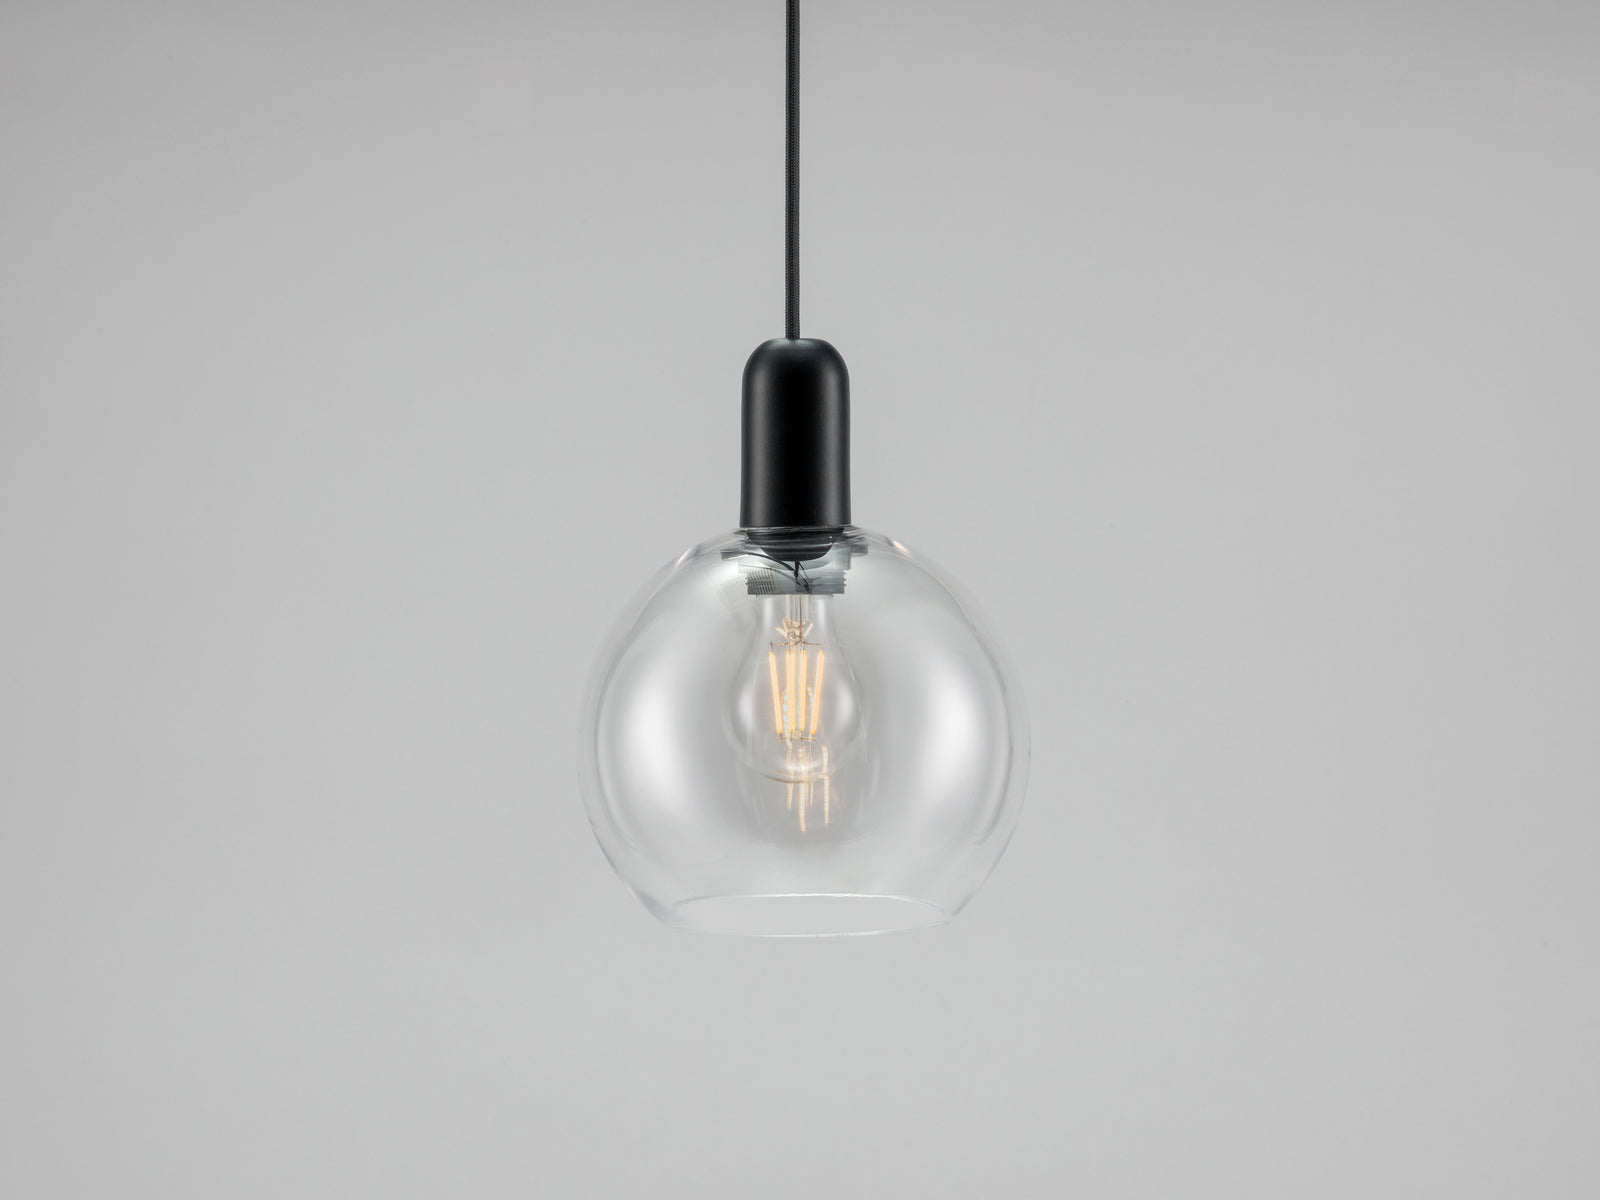 Es led 4w bulb | light | houseof.com